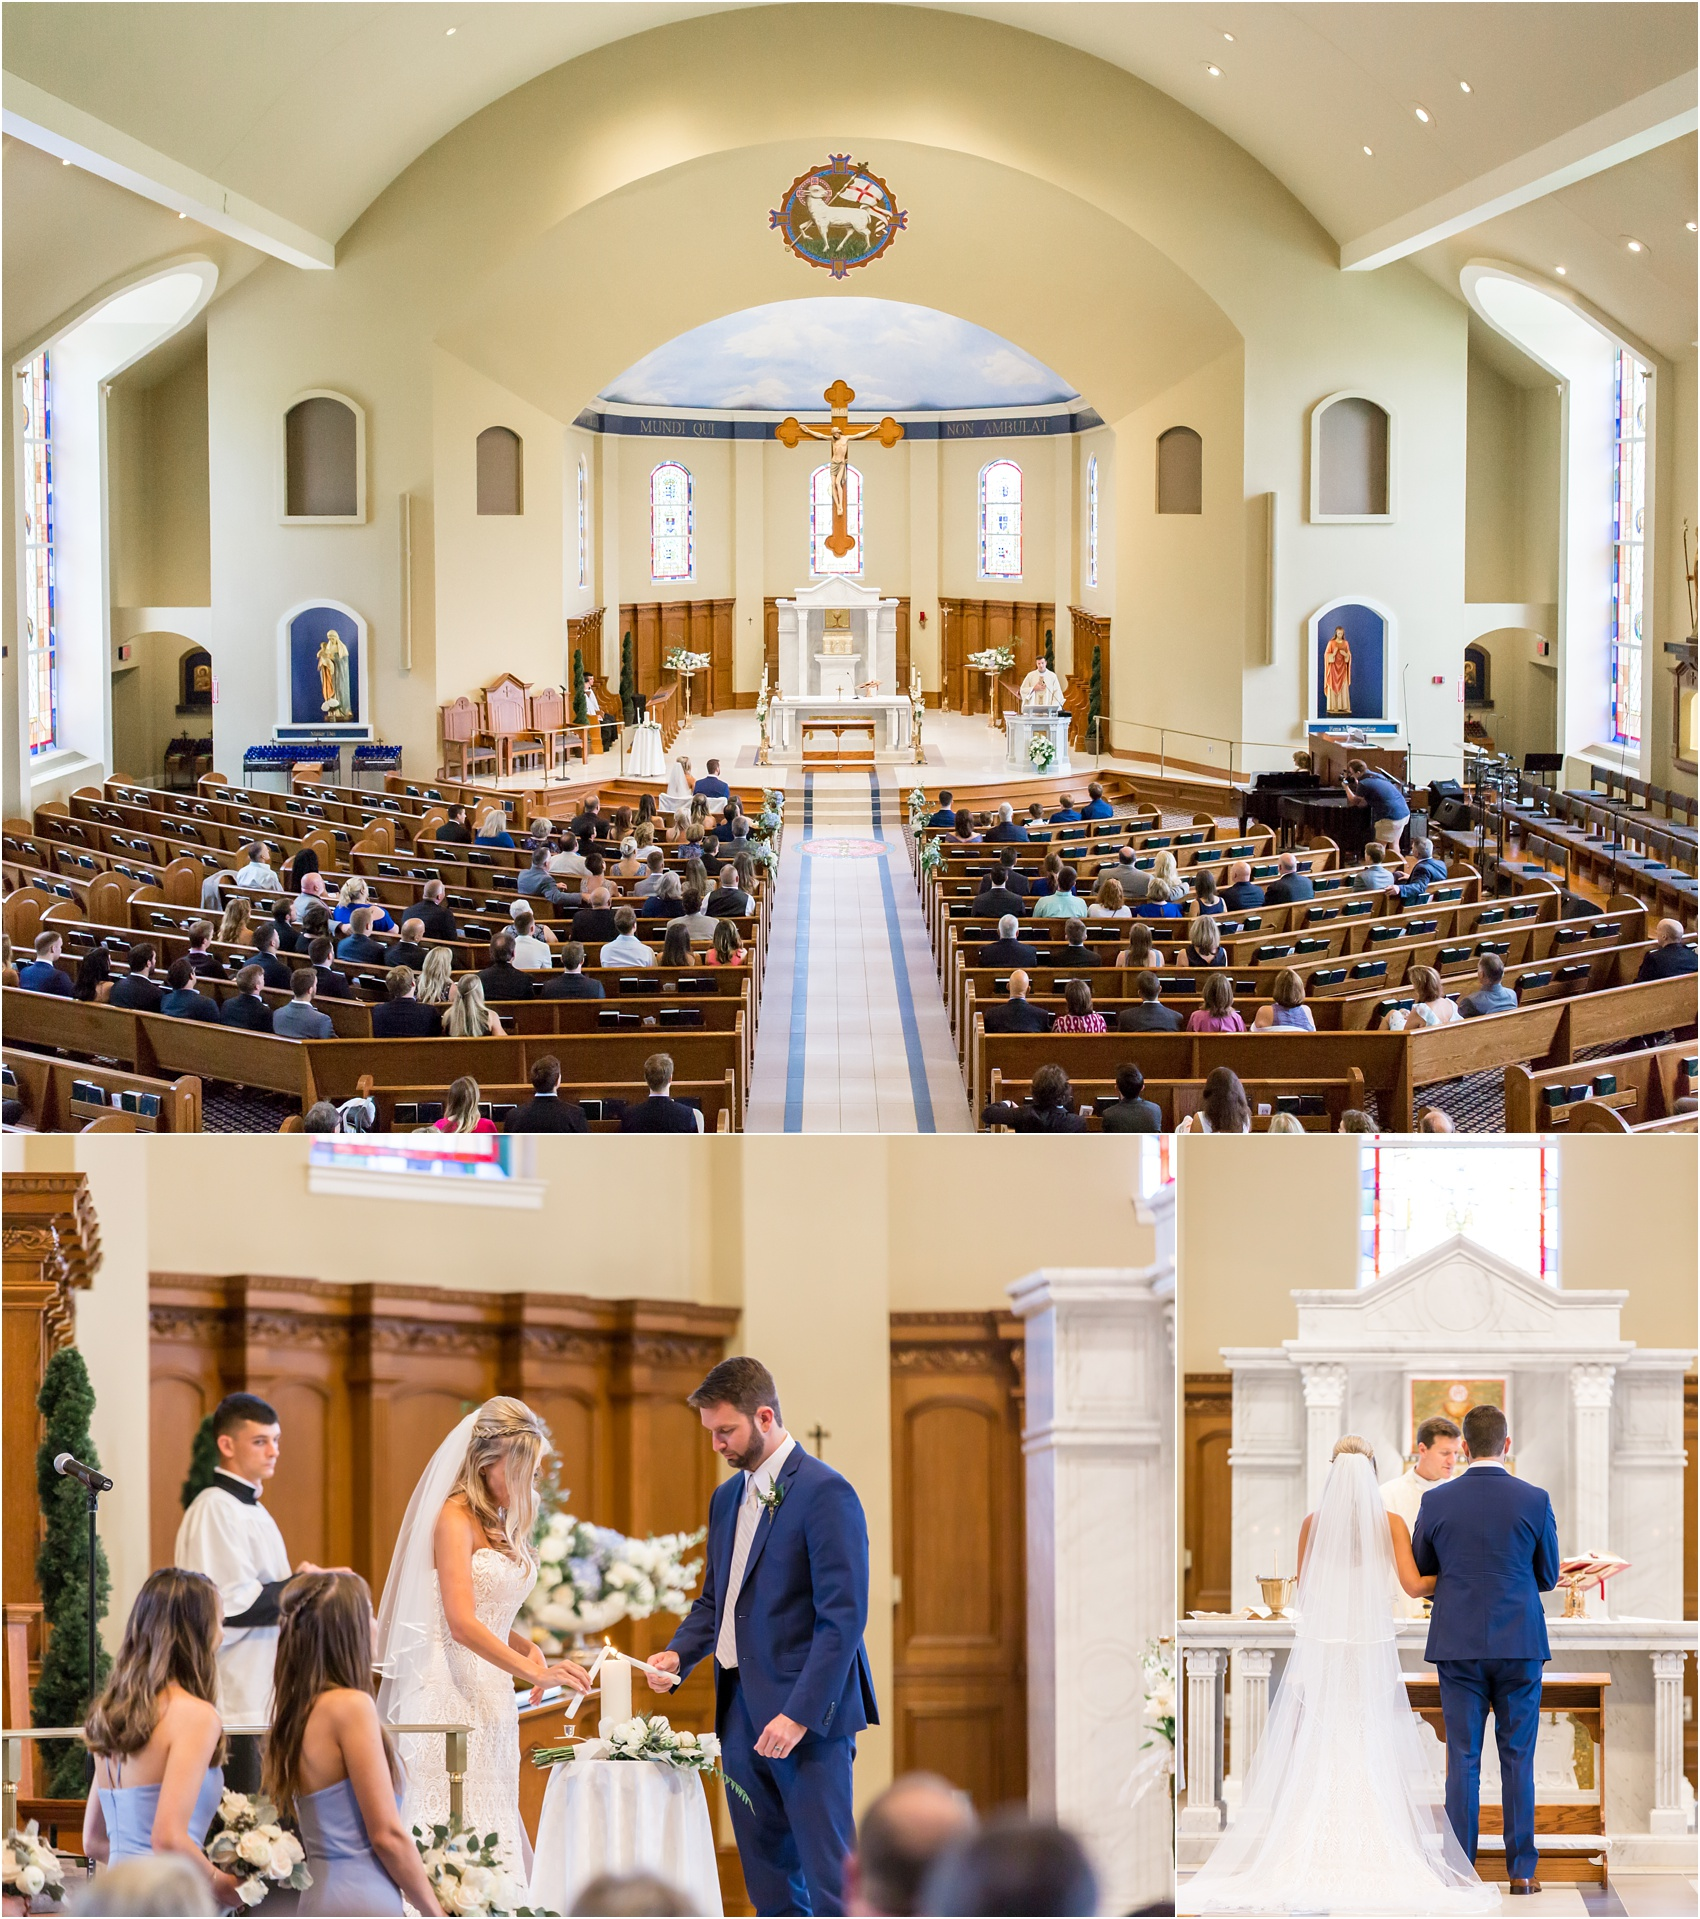 Savannah Eve Photography- Barkie-Wilson Wedding- Sneak Peek-23.jpg